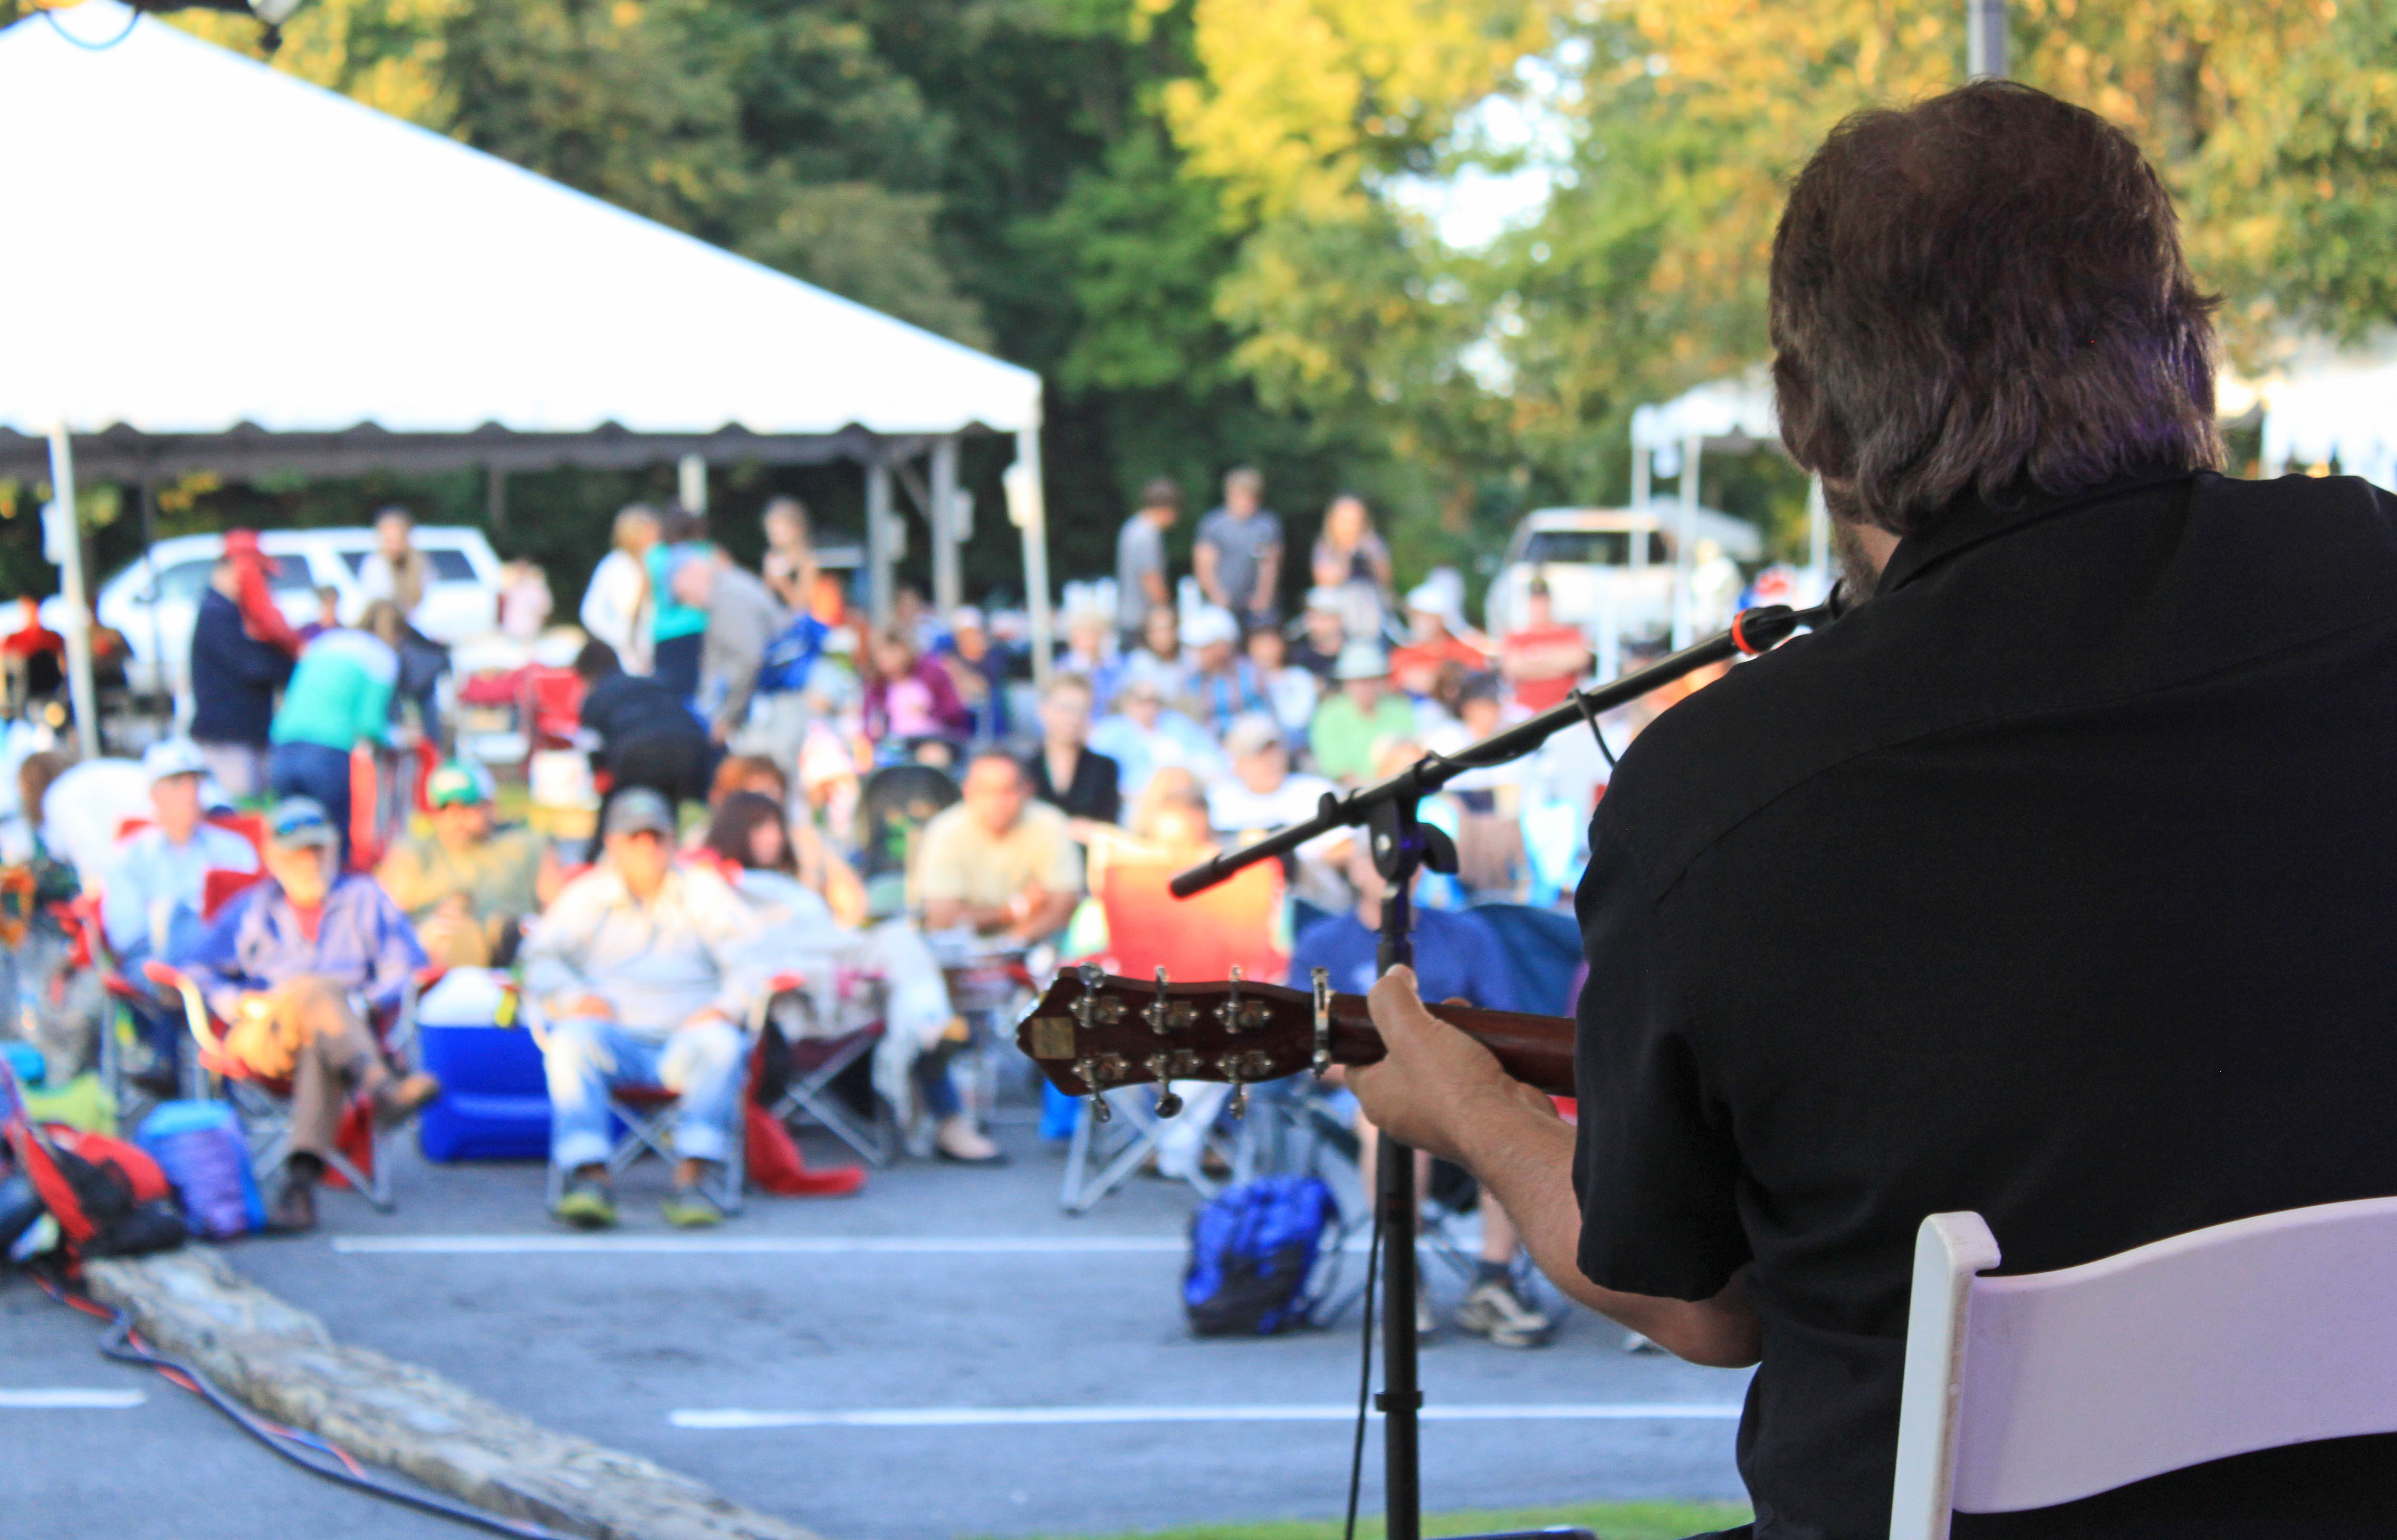 Sixth Annual Blowing Rock Music Festival